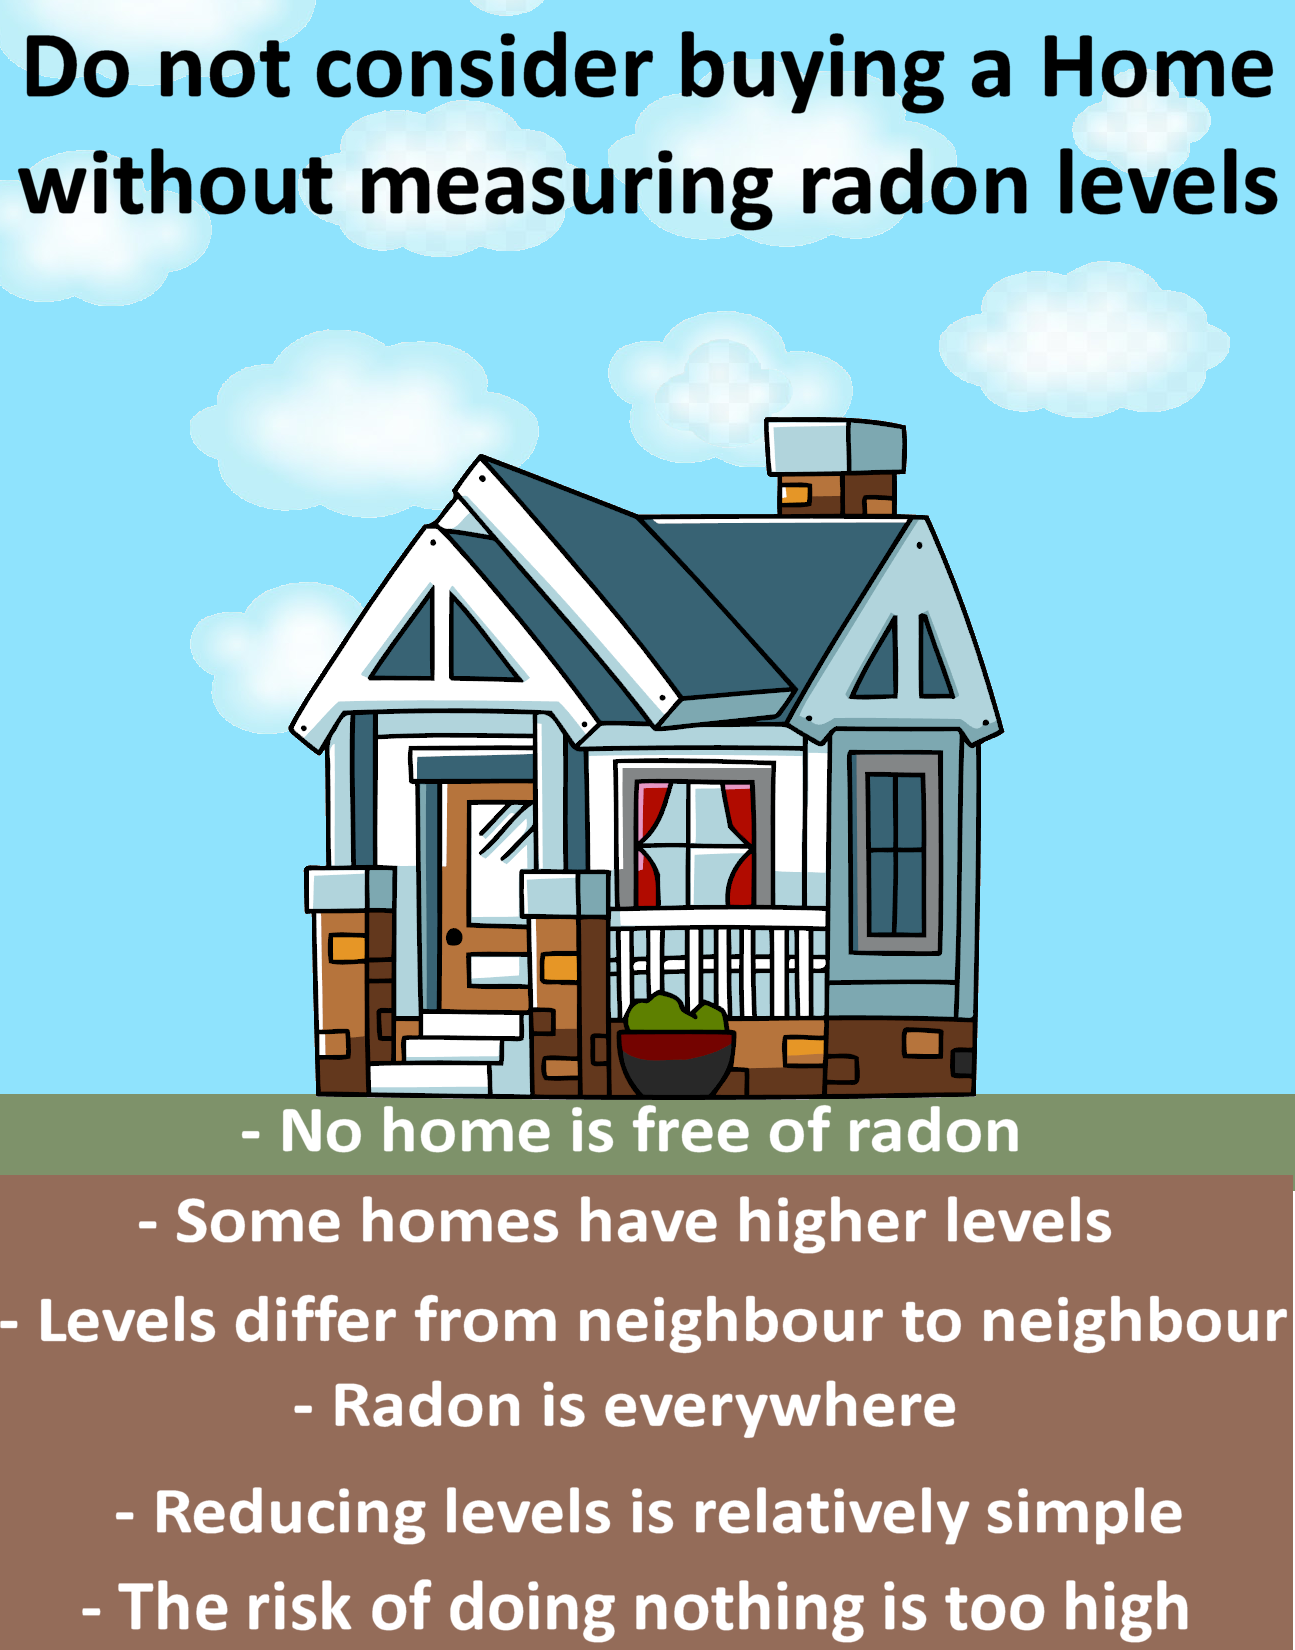 Don't buy a home without having it tested for radon first.